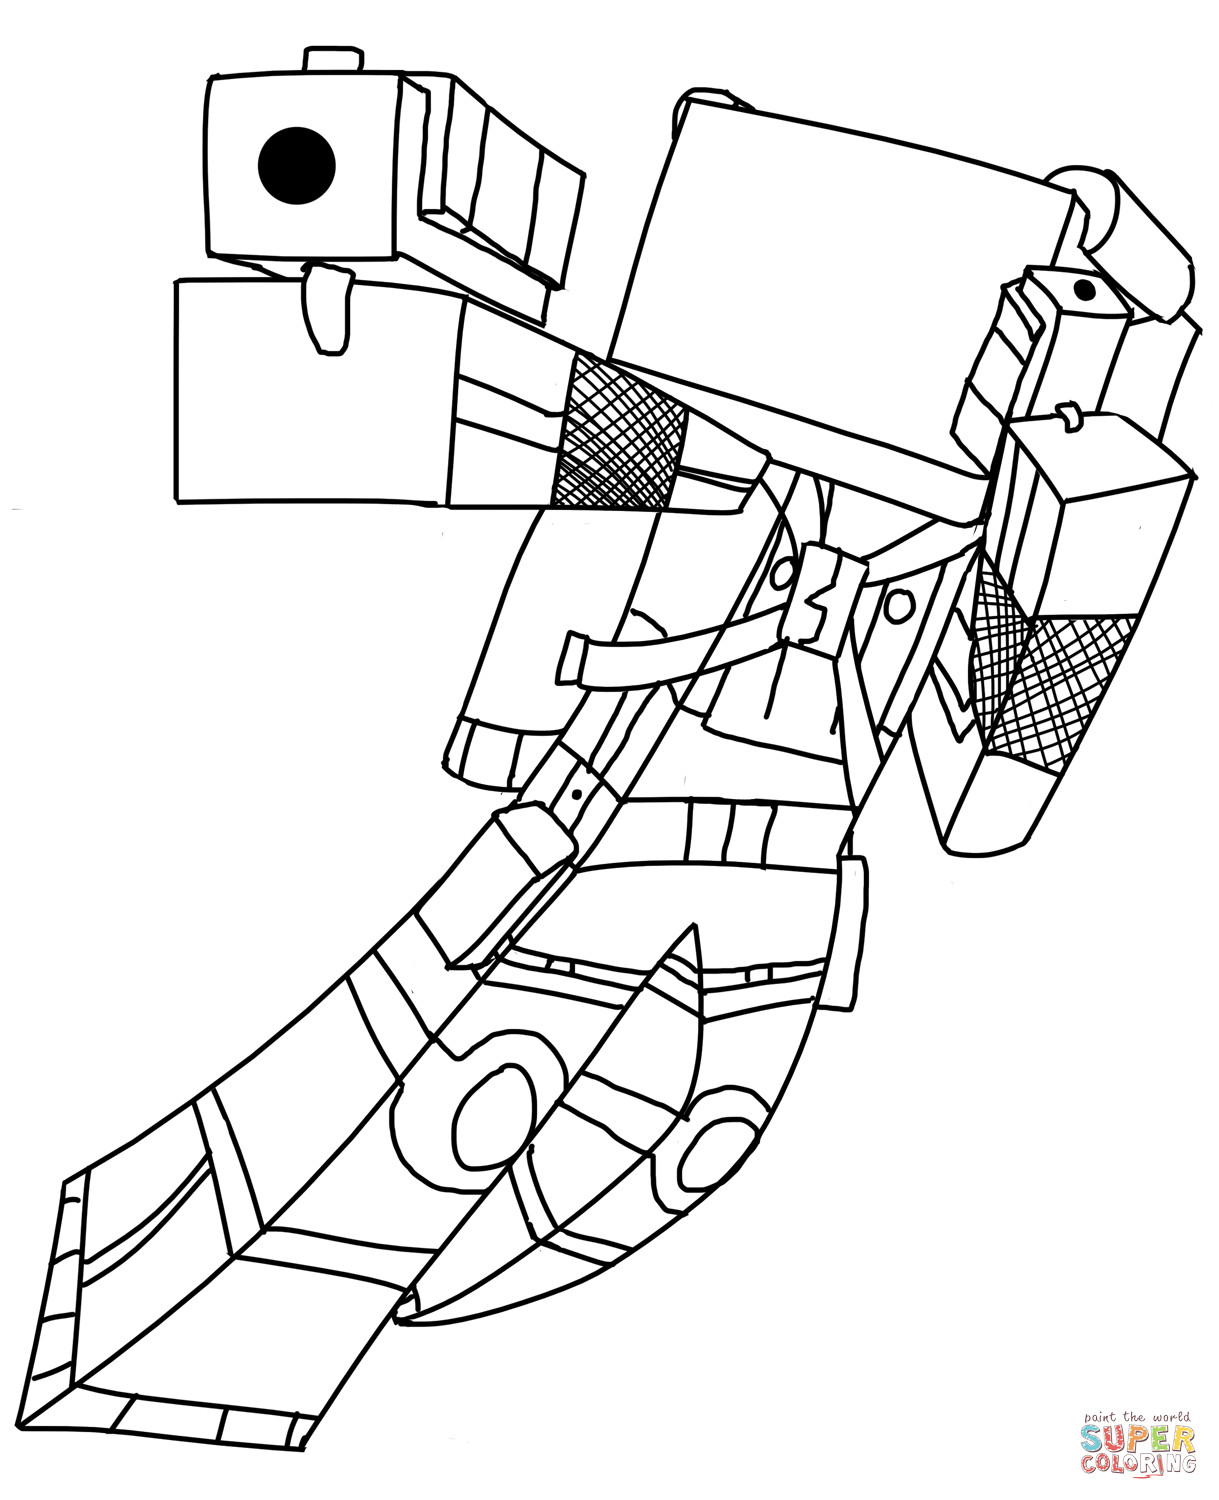 minecraft mutant enderman coloring pages 37 coloriage minecraft enderman mutant pages mutant coloring minecraft enderman